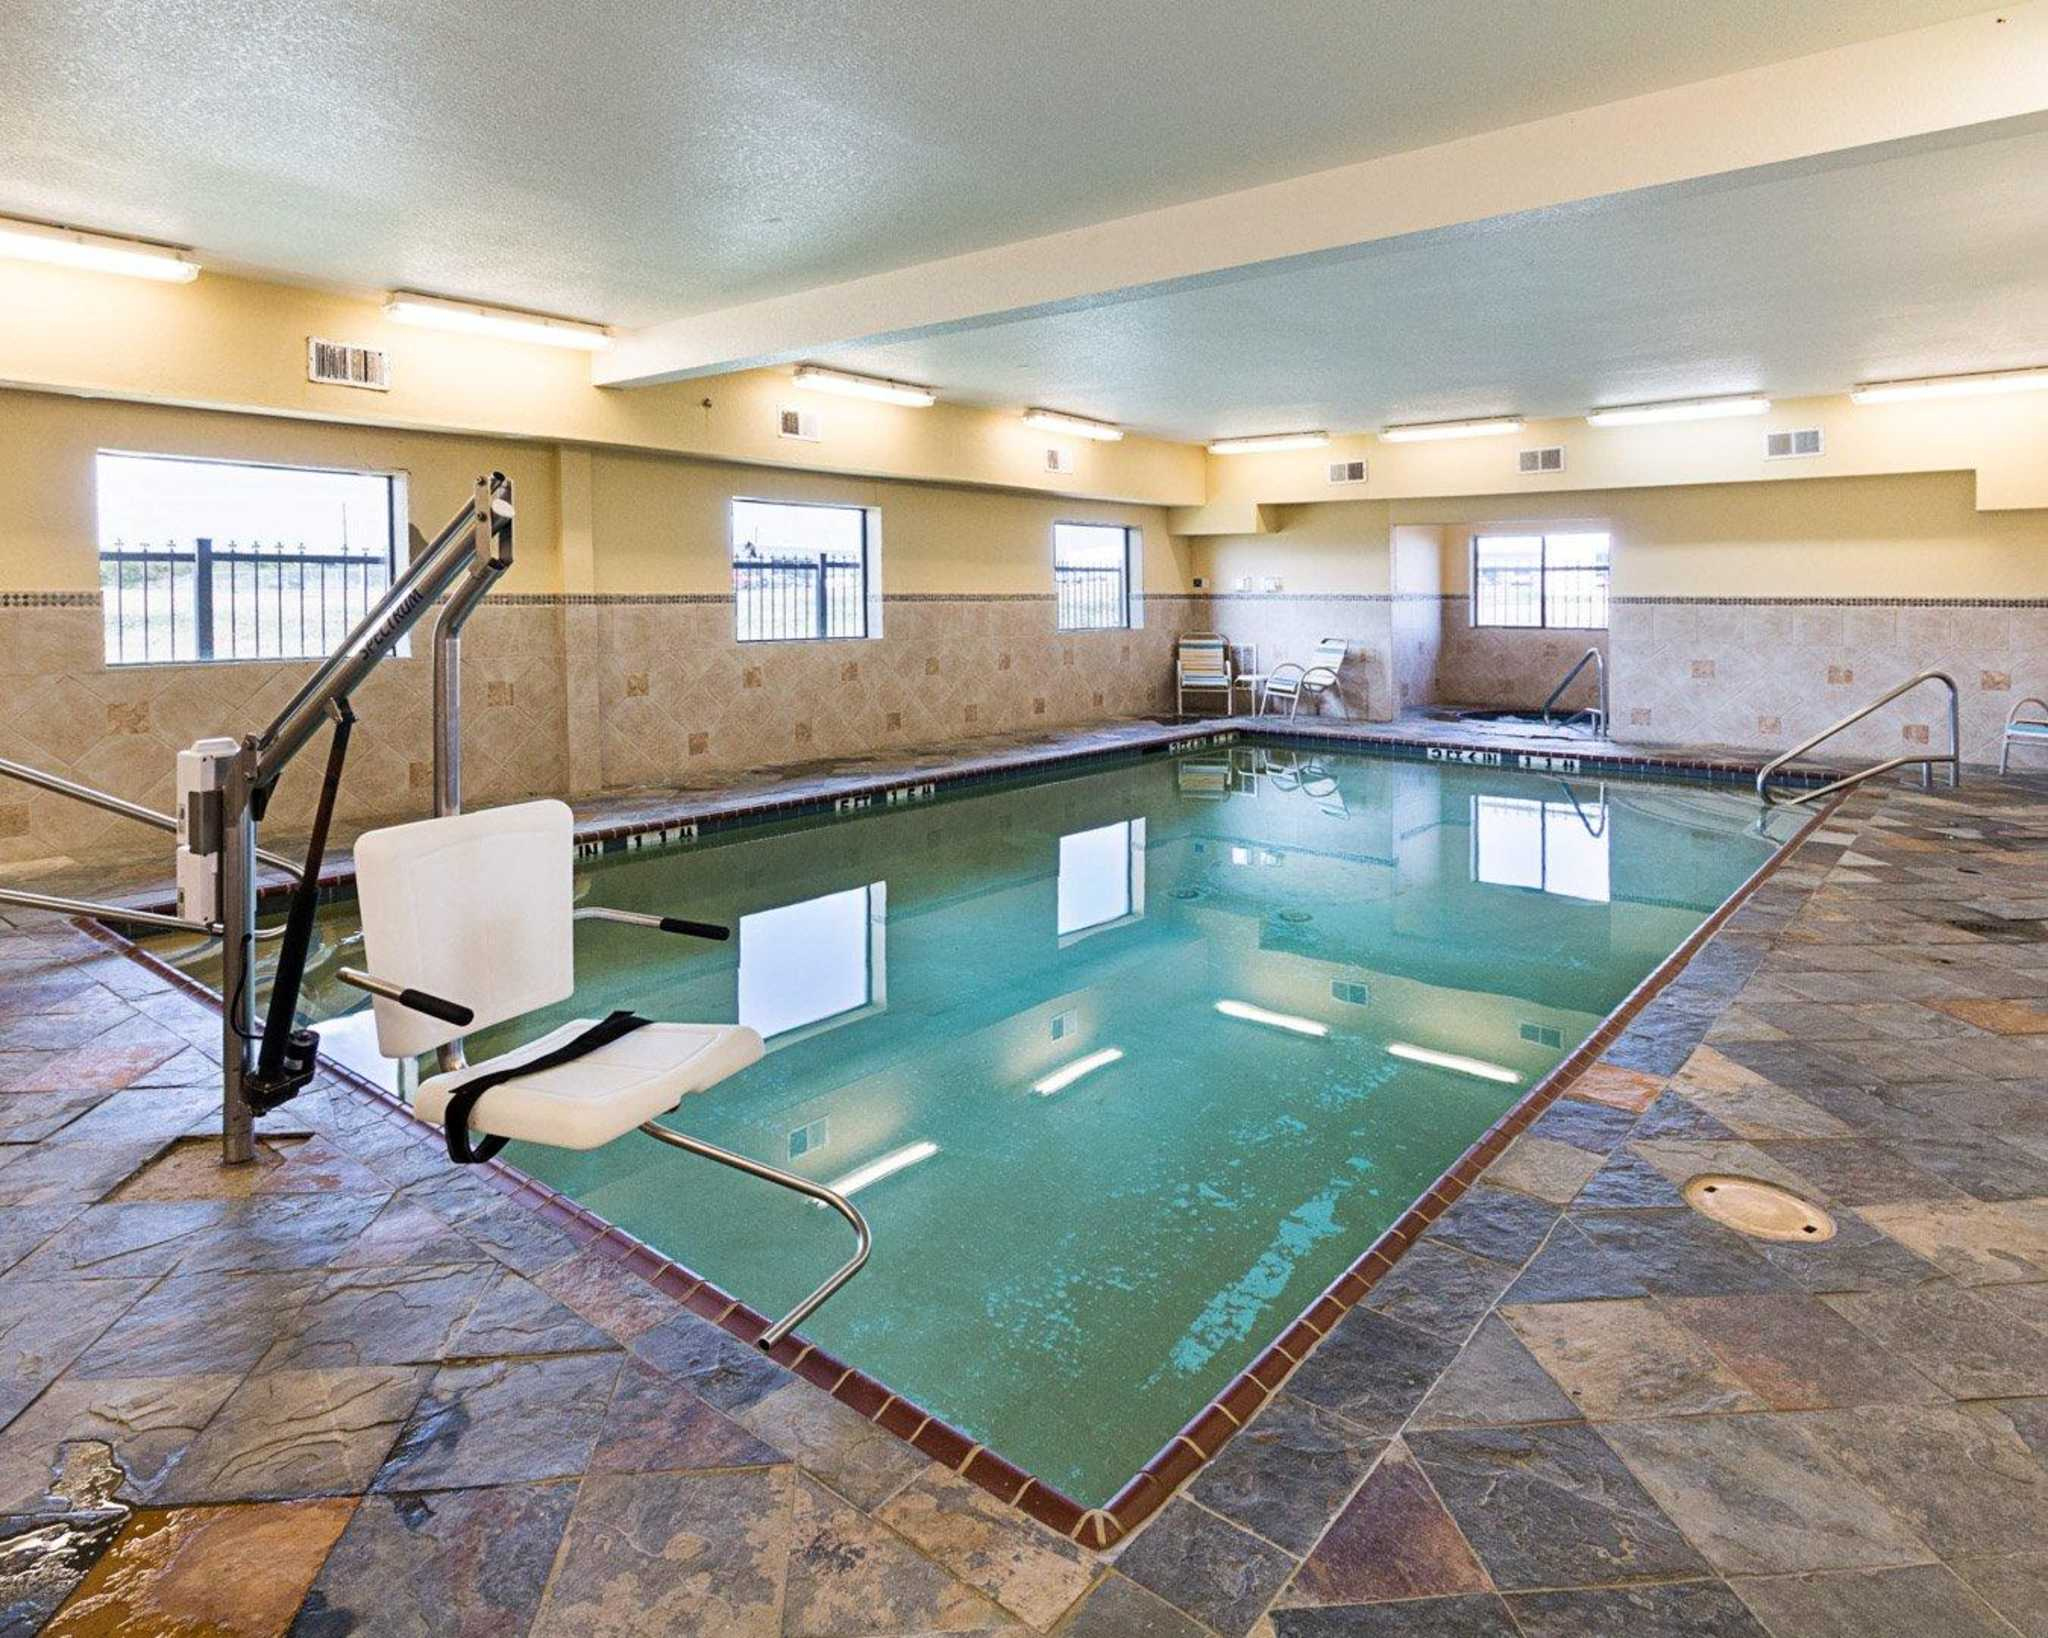 Hotels In Brownwood Tx With Indoor Pool